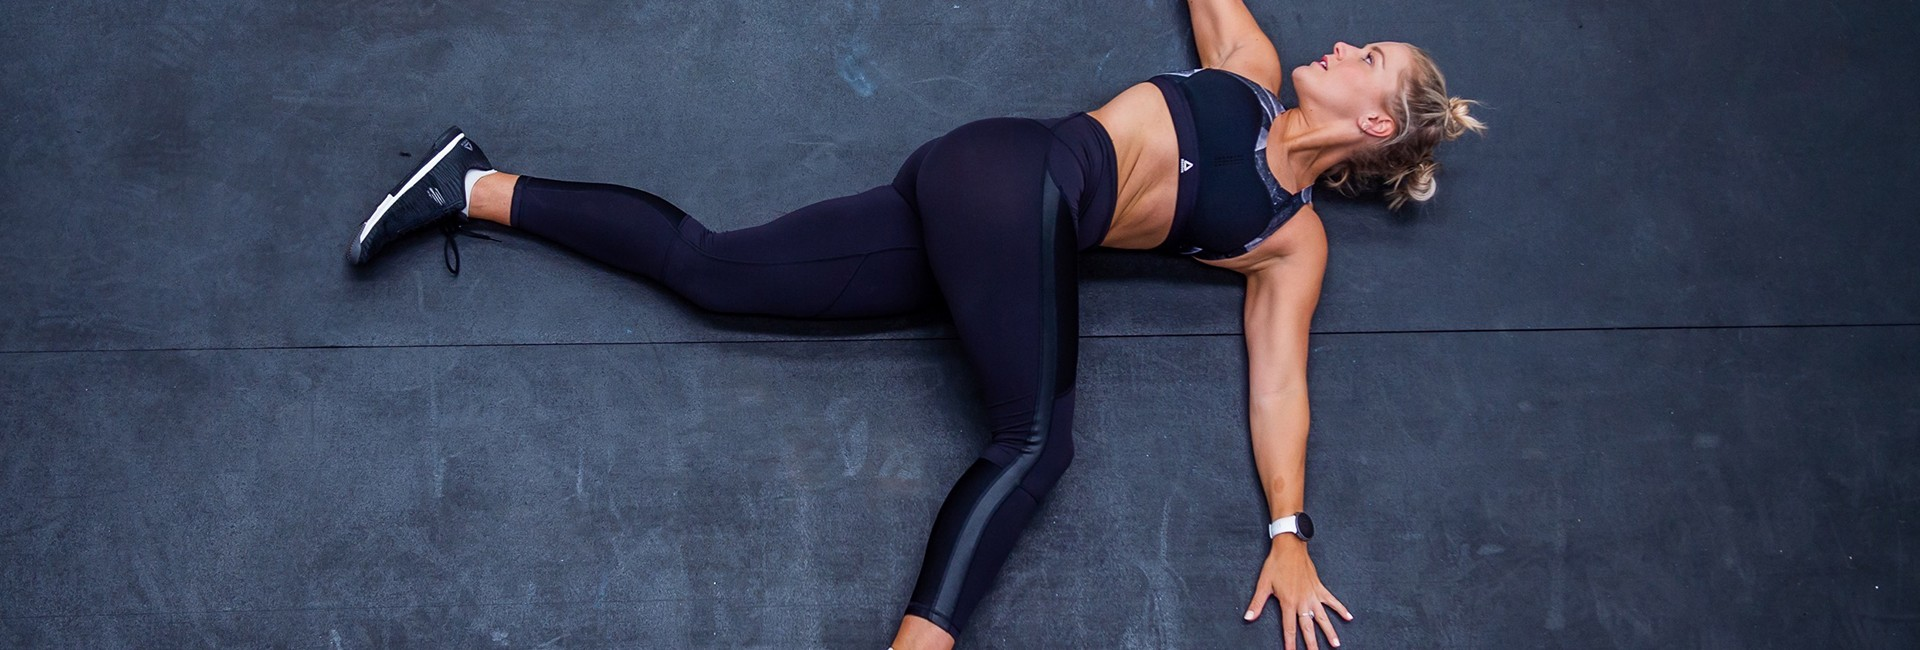 Should You Combine Cardio And Strength Training?